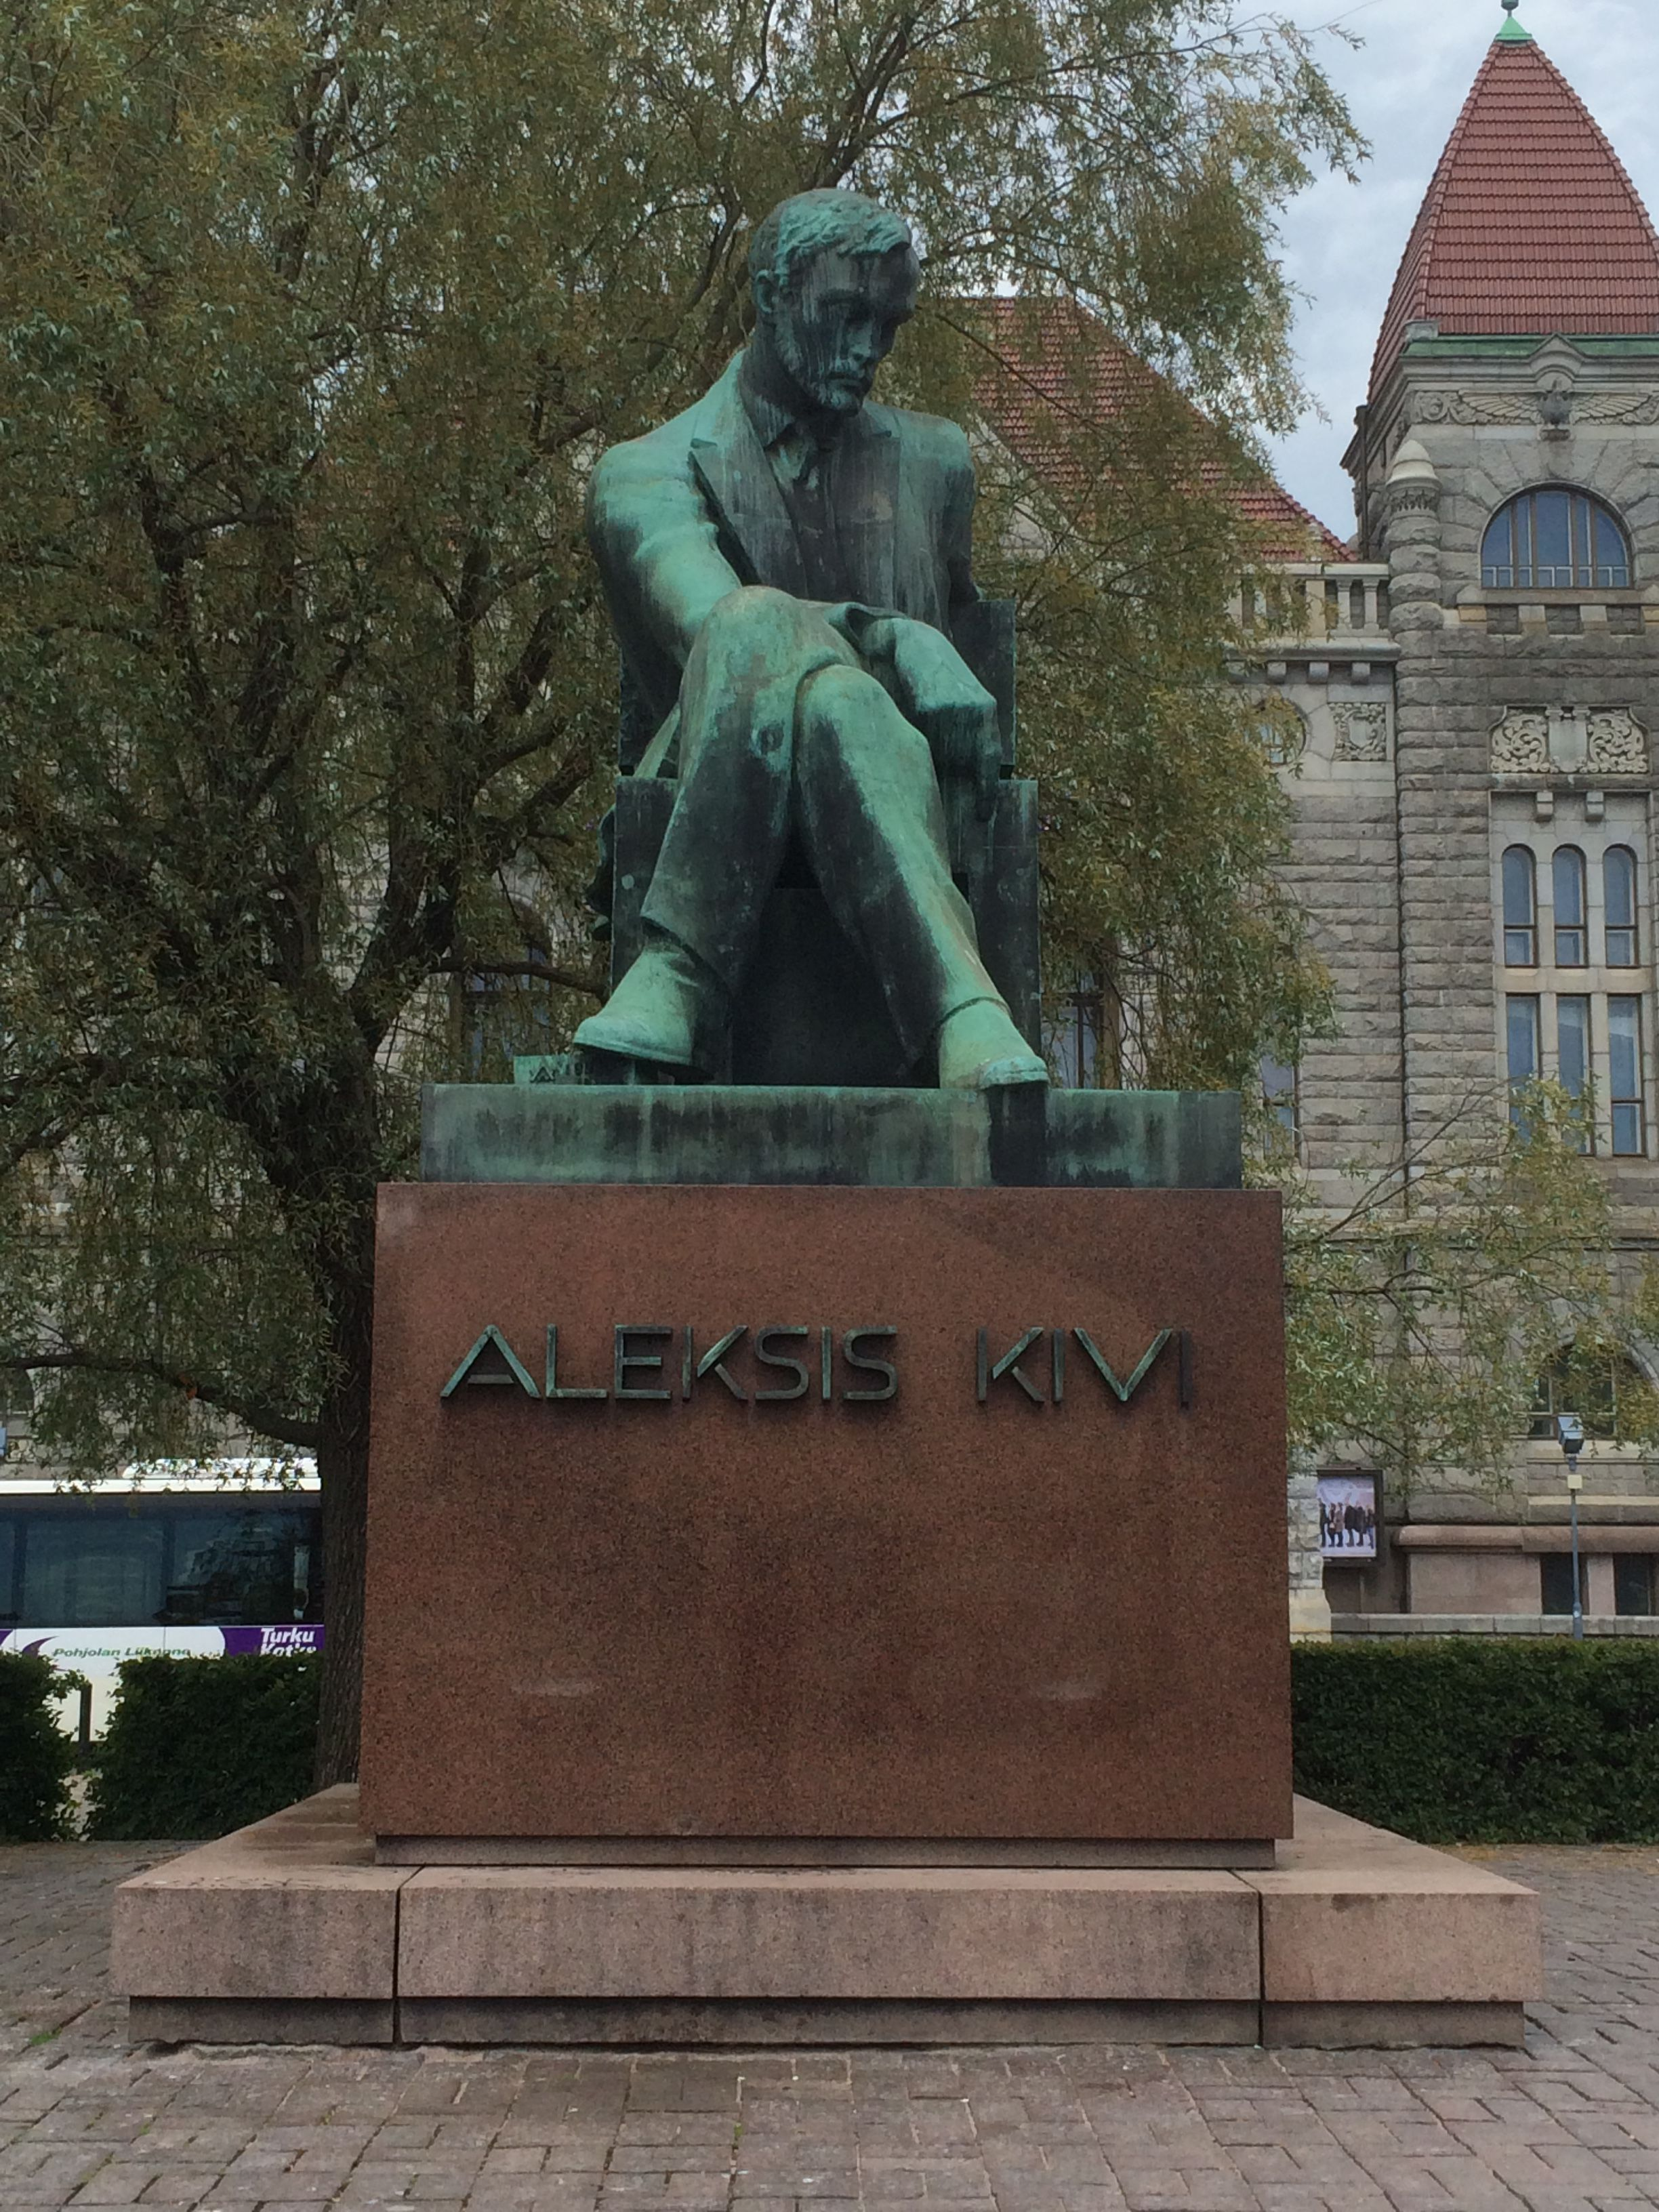 Statue of Finnish author Aleksis Kivi in front of the Finish National Theatre in Helsinki. #travel #finland #scandinavia #europe #helsinki #suomi #sculpture #literature #nordic